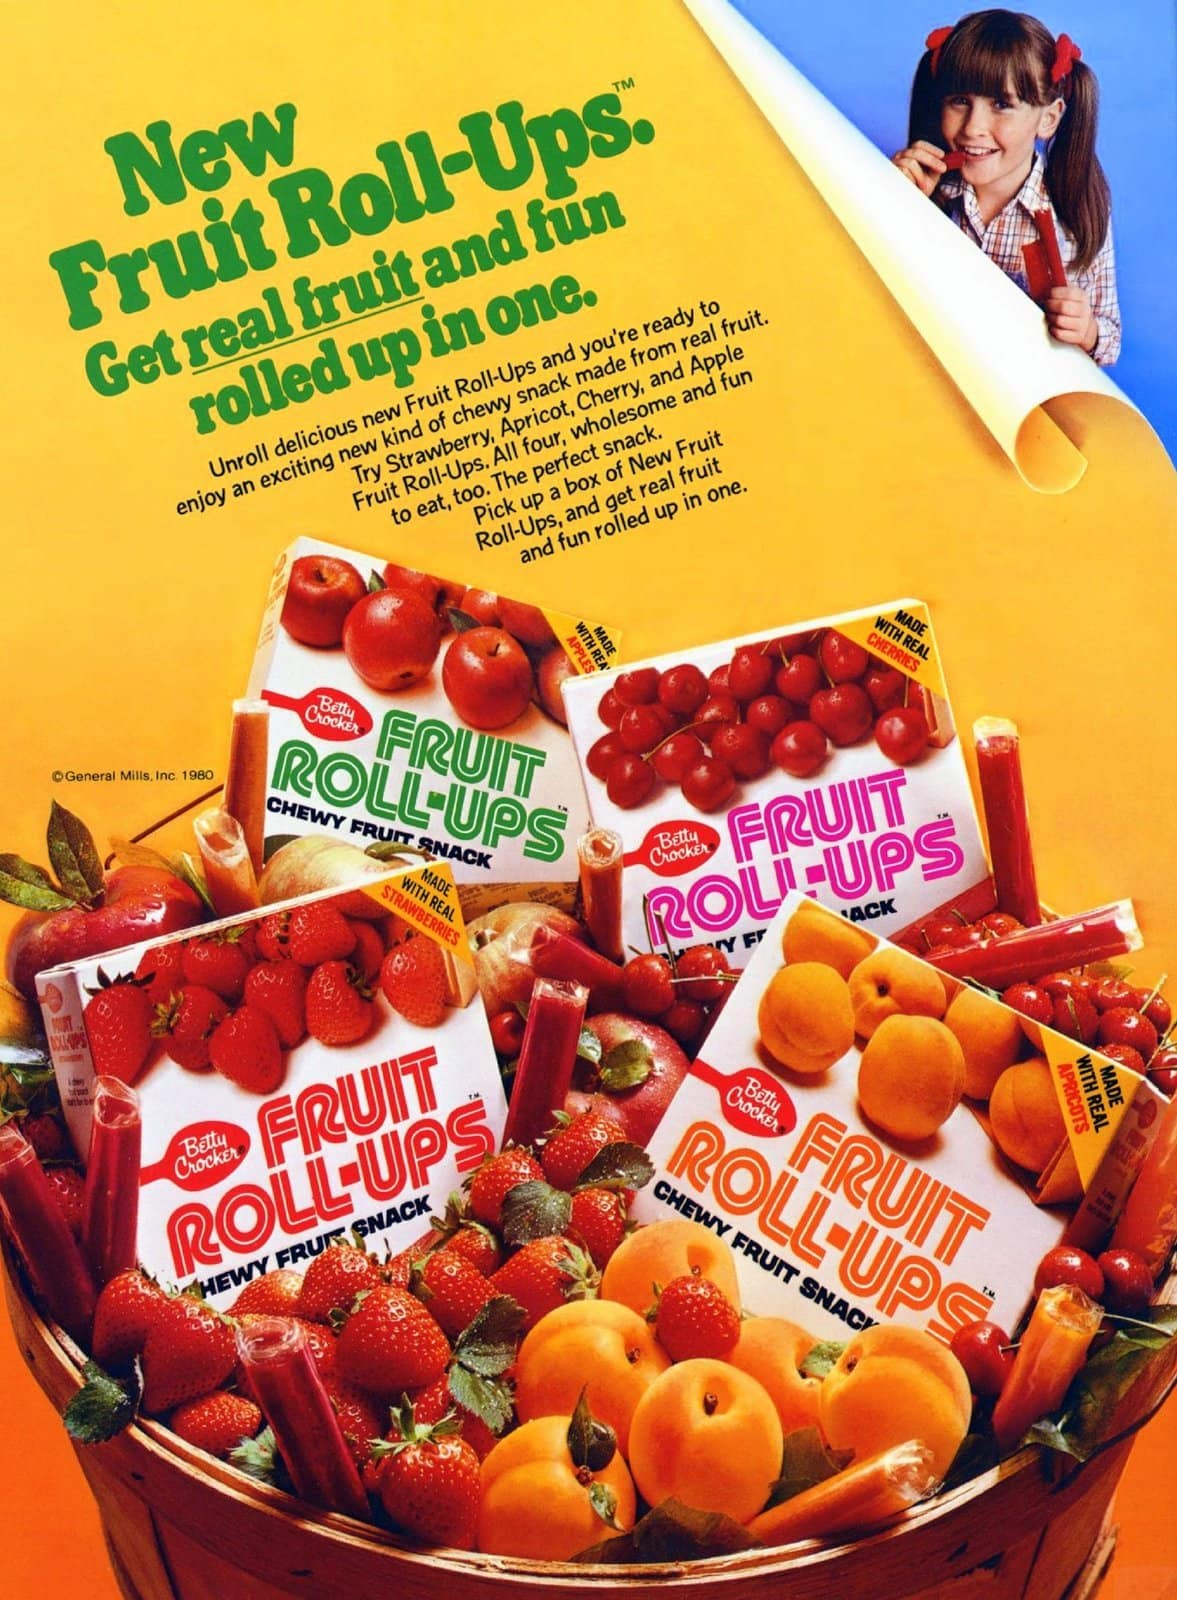 New Fruit Roll-Ups (Vintage snacks from 1980)